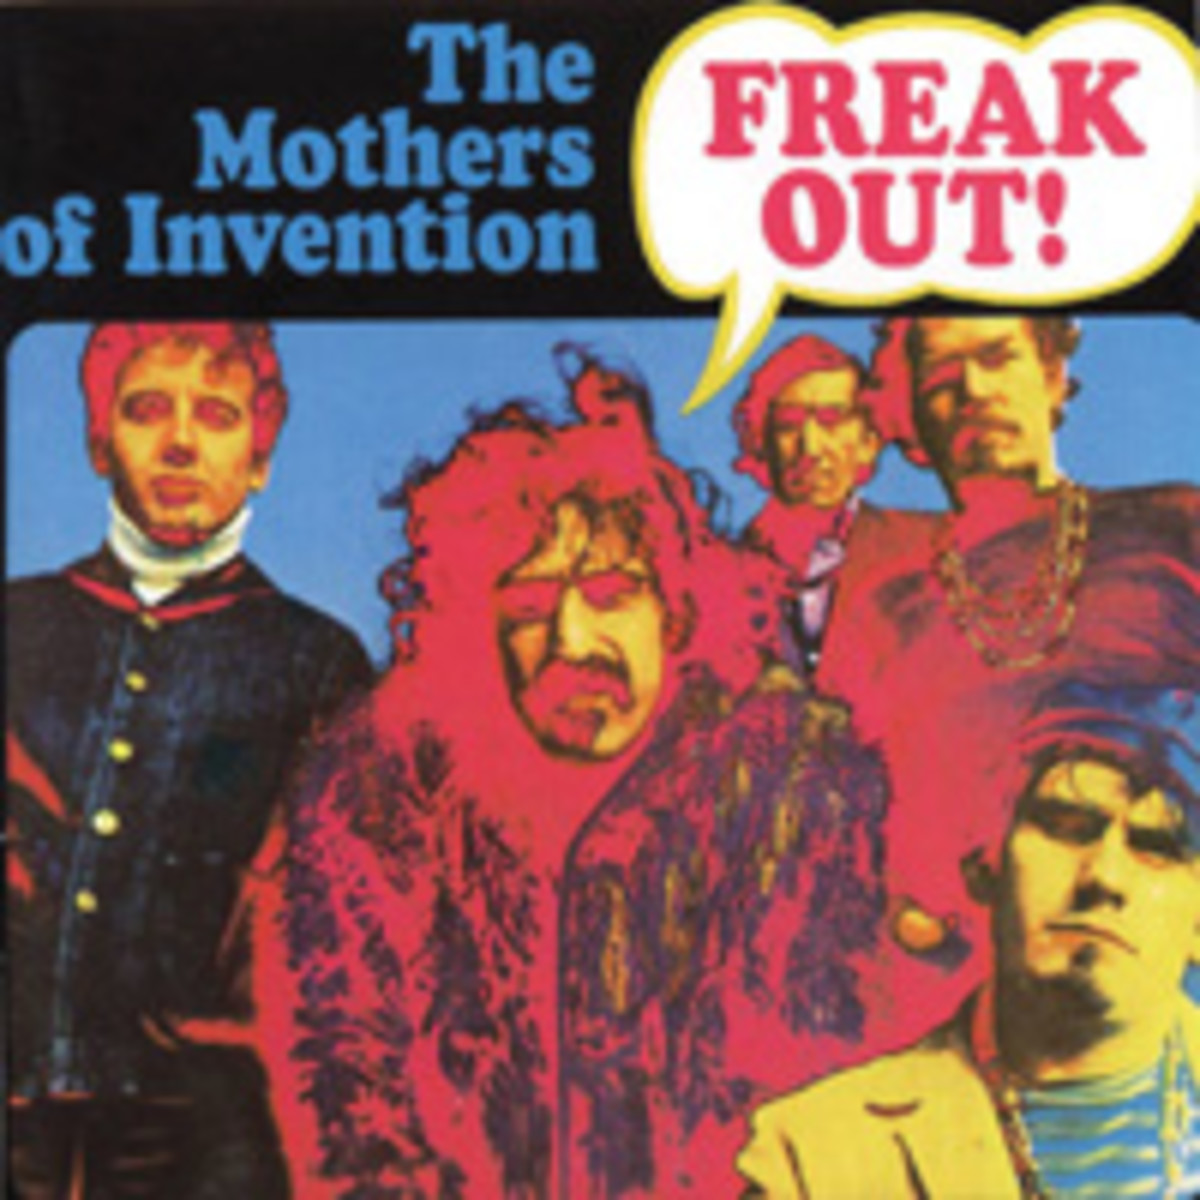 Frank Zappa and The Mothers of Invention Freak Out